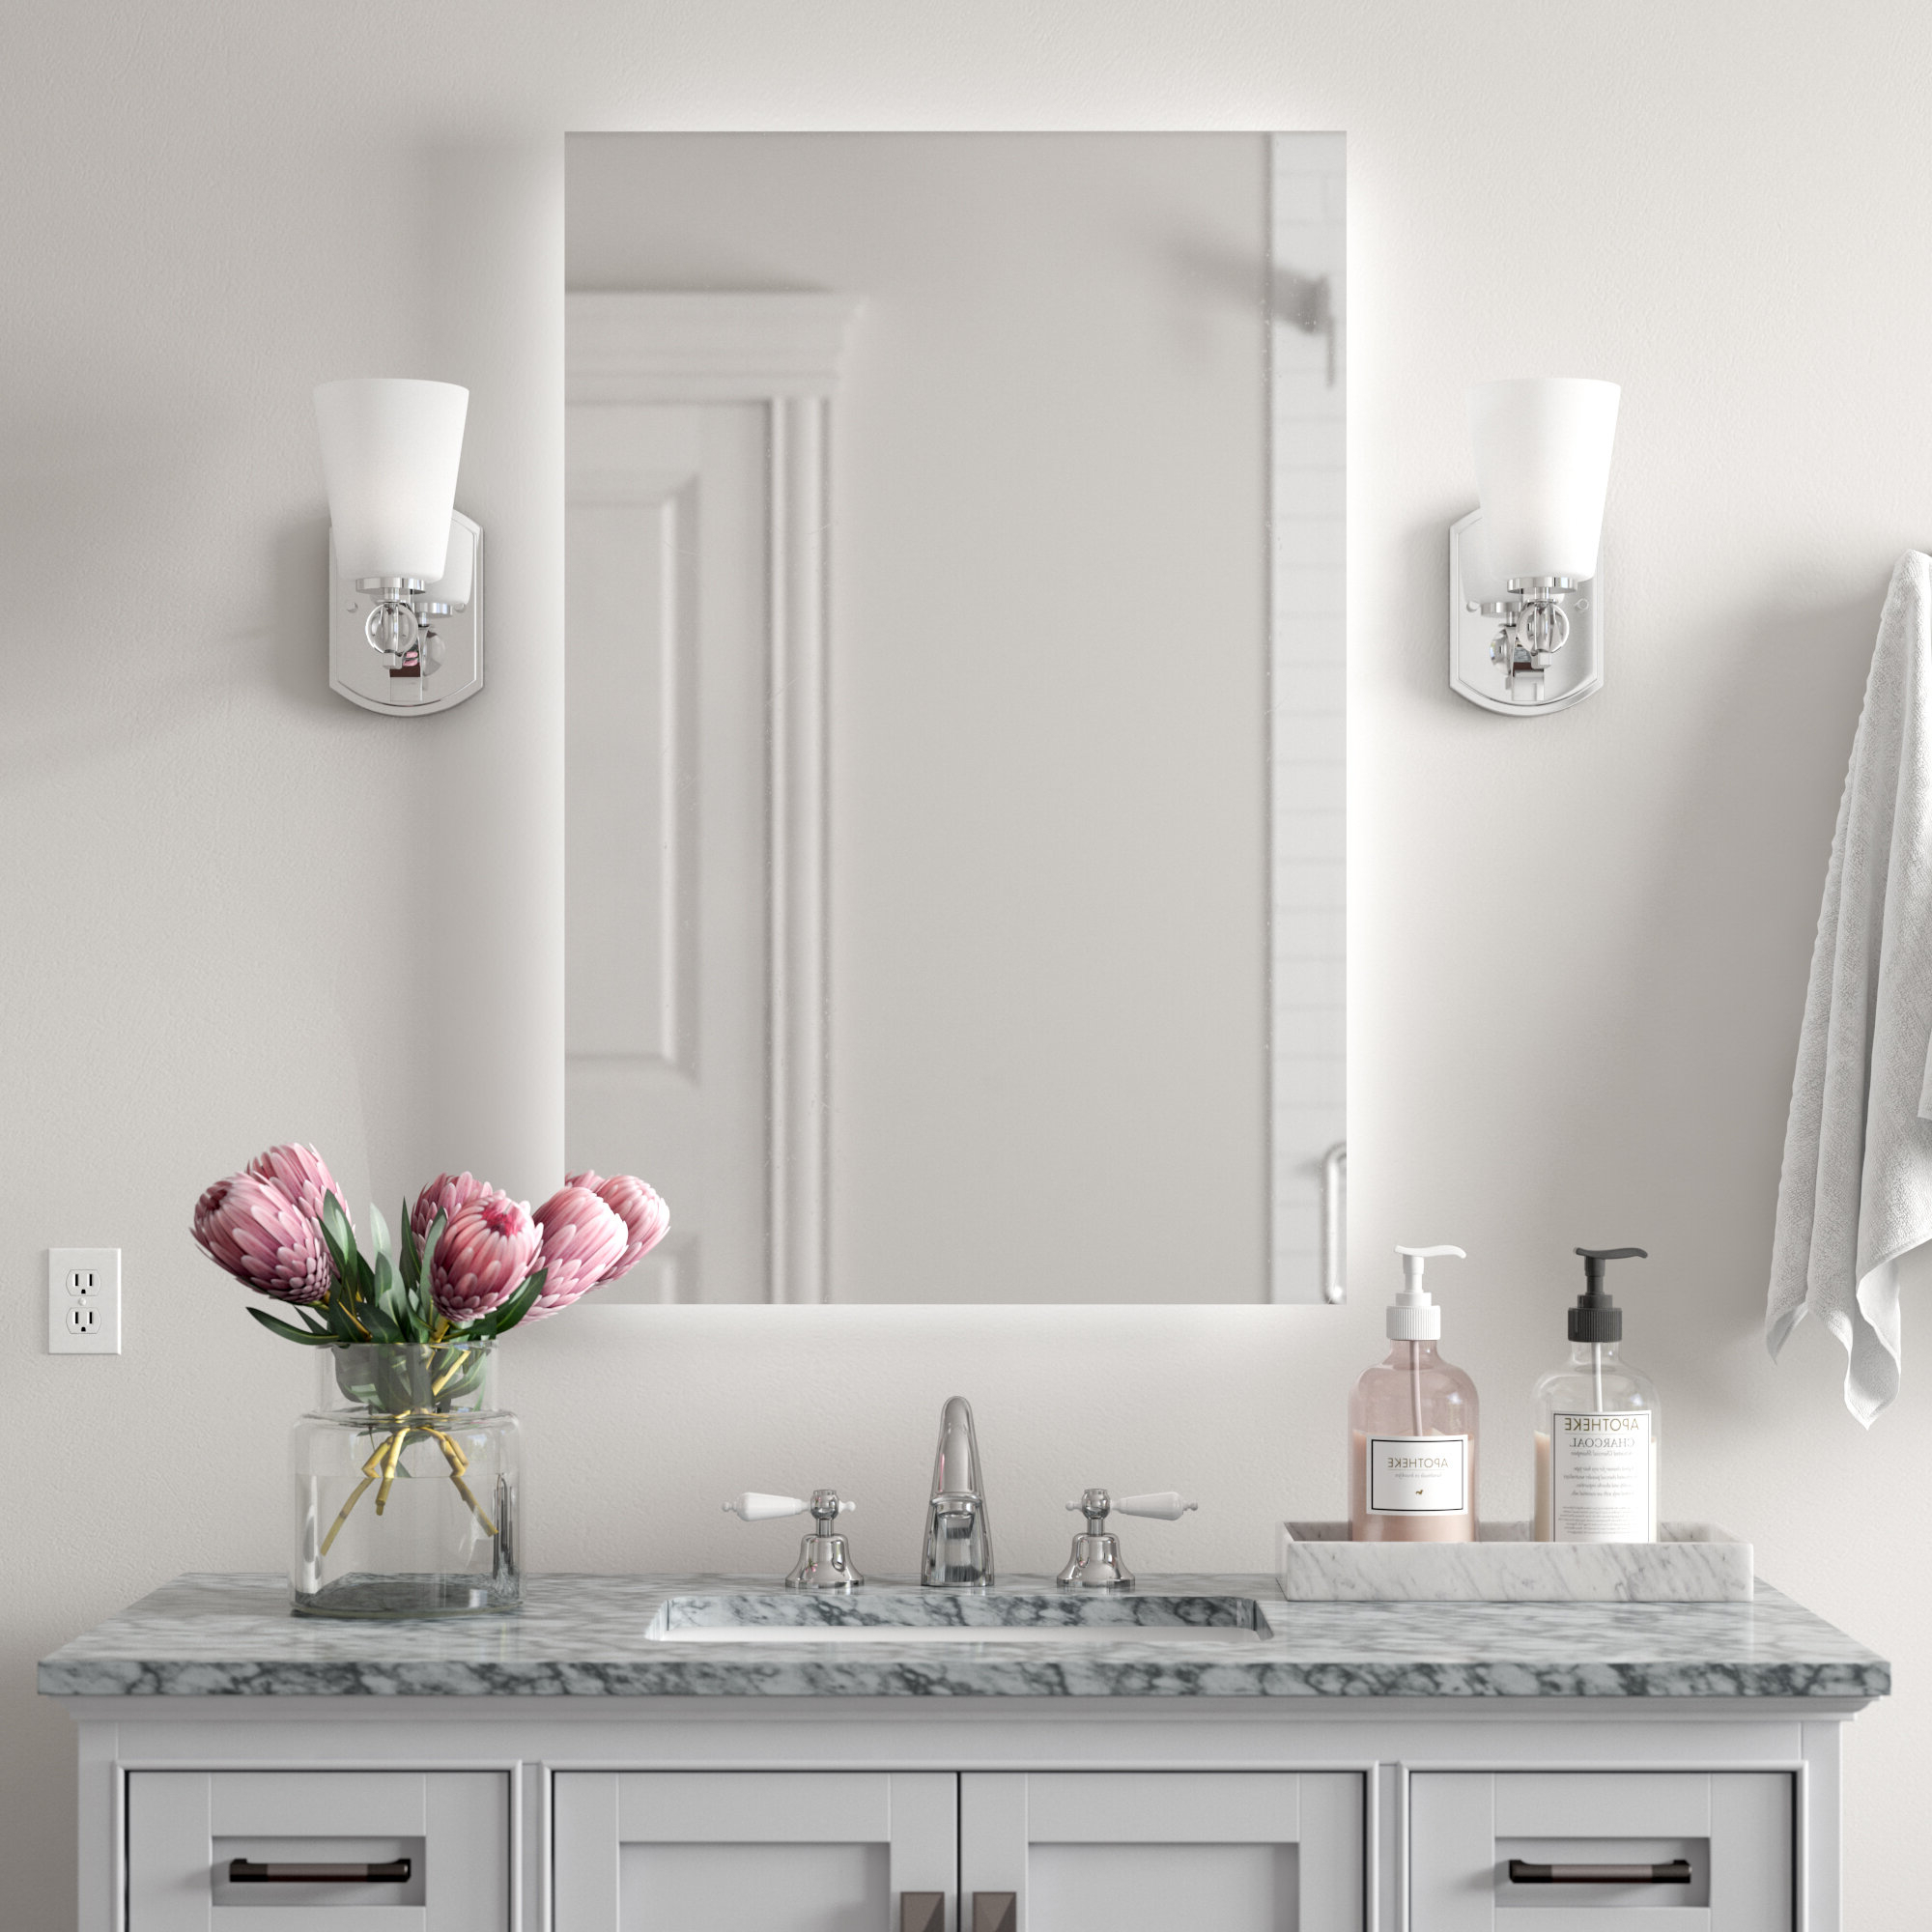 Well Liked Mexborough Bathroom/vanity Mirrors Pertaining To Moumoune Backlit Bathroom/vanity Mirror (View 3 of 20)